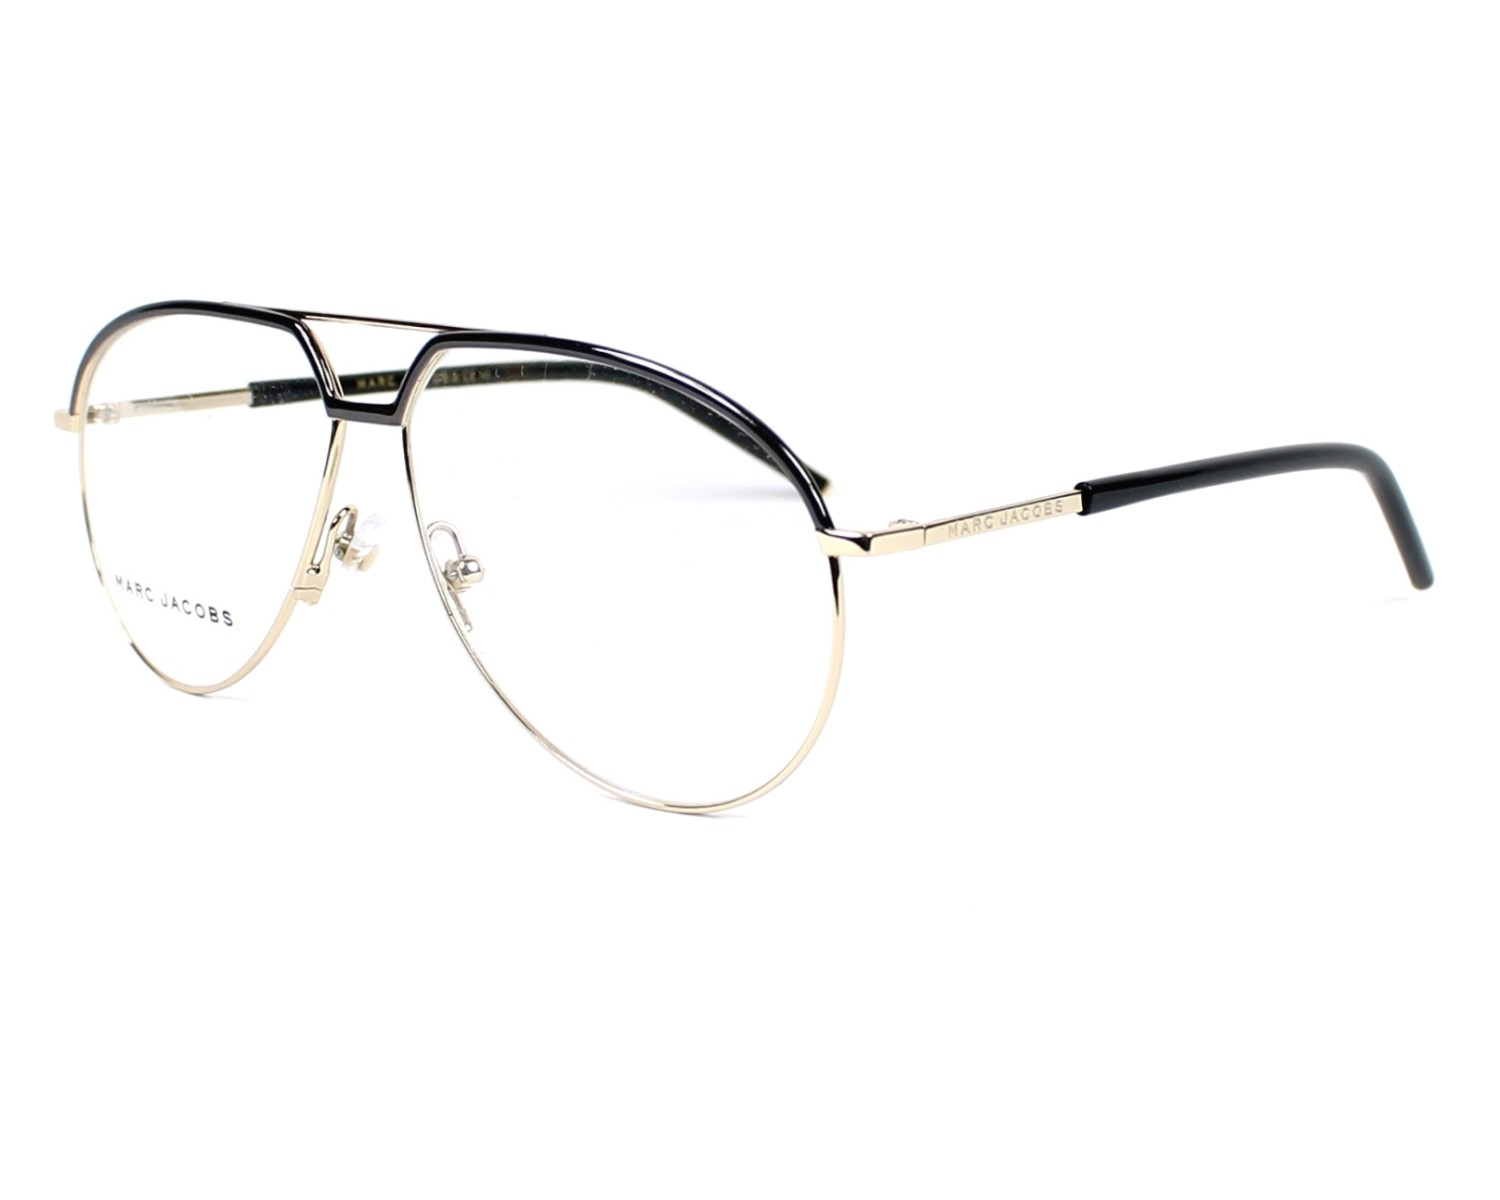 eb504d828c9 eyeglasses Marc Jacobs MARC-14 TZV - Black Gold profile view